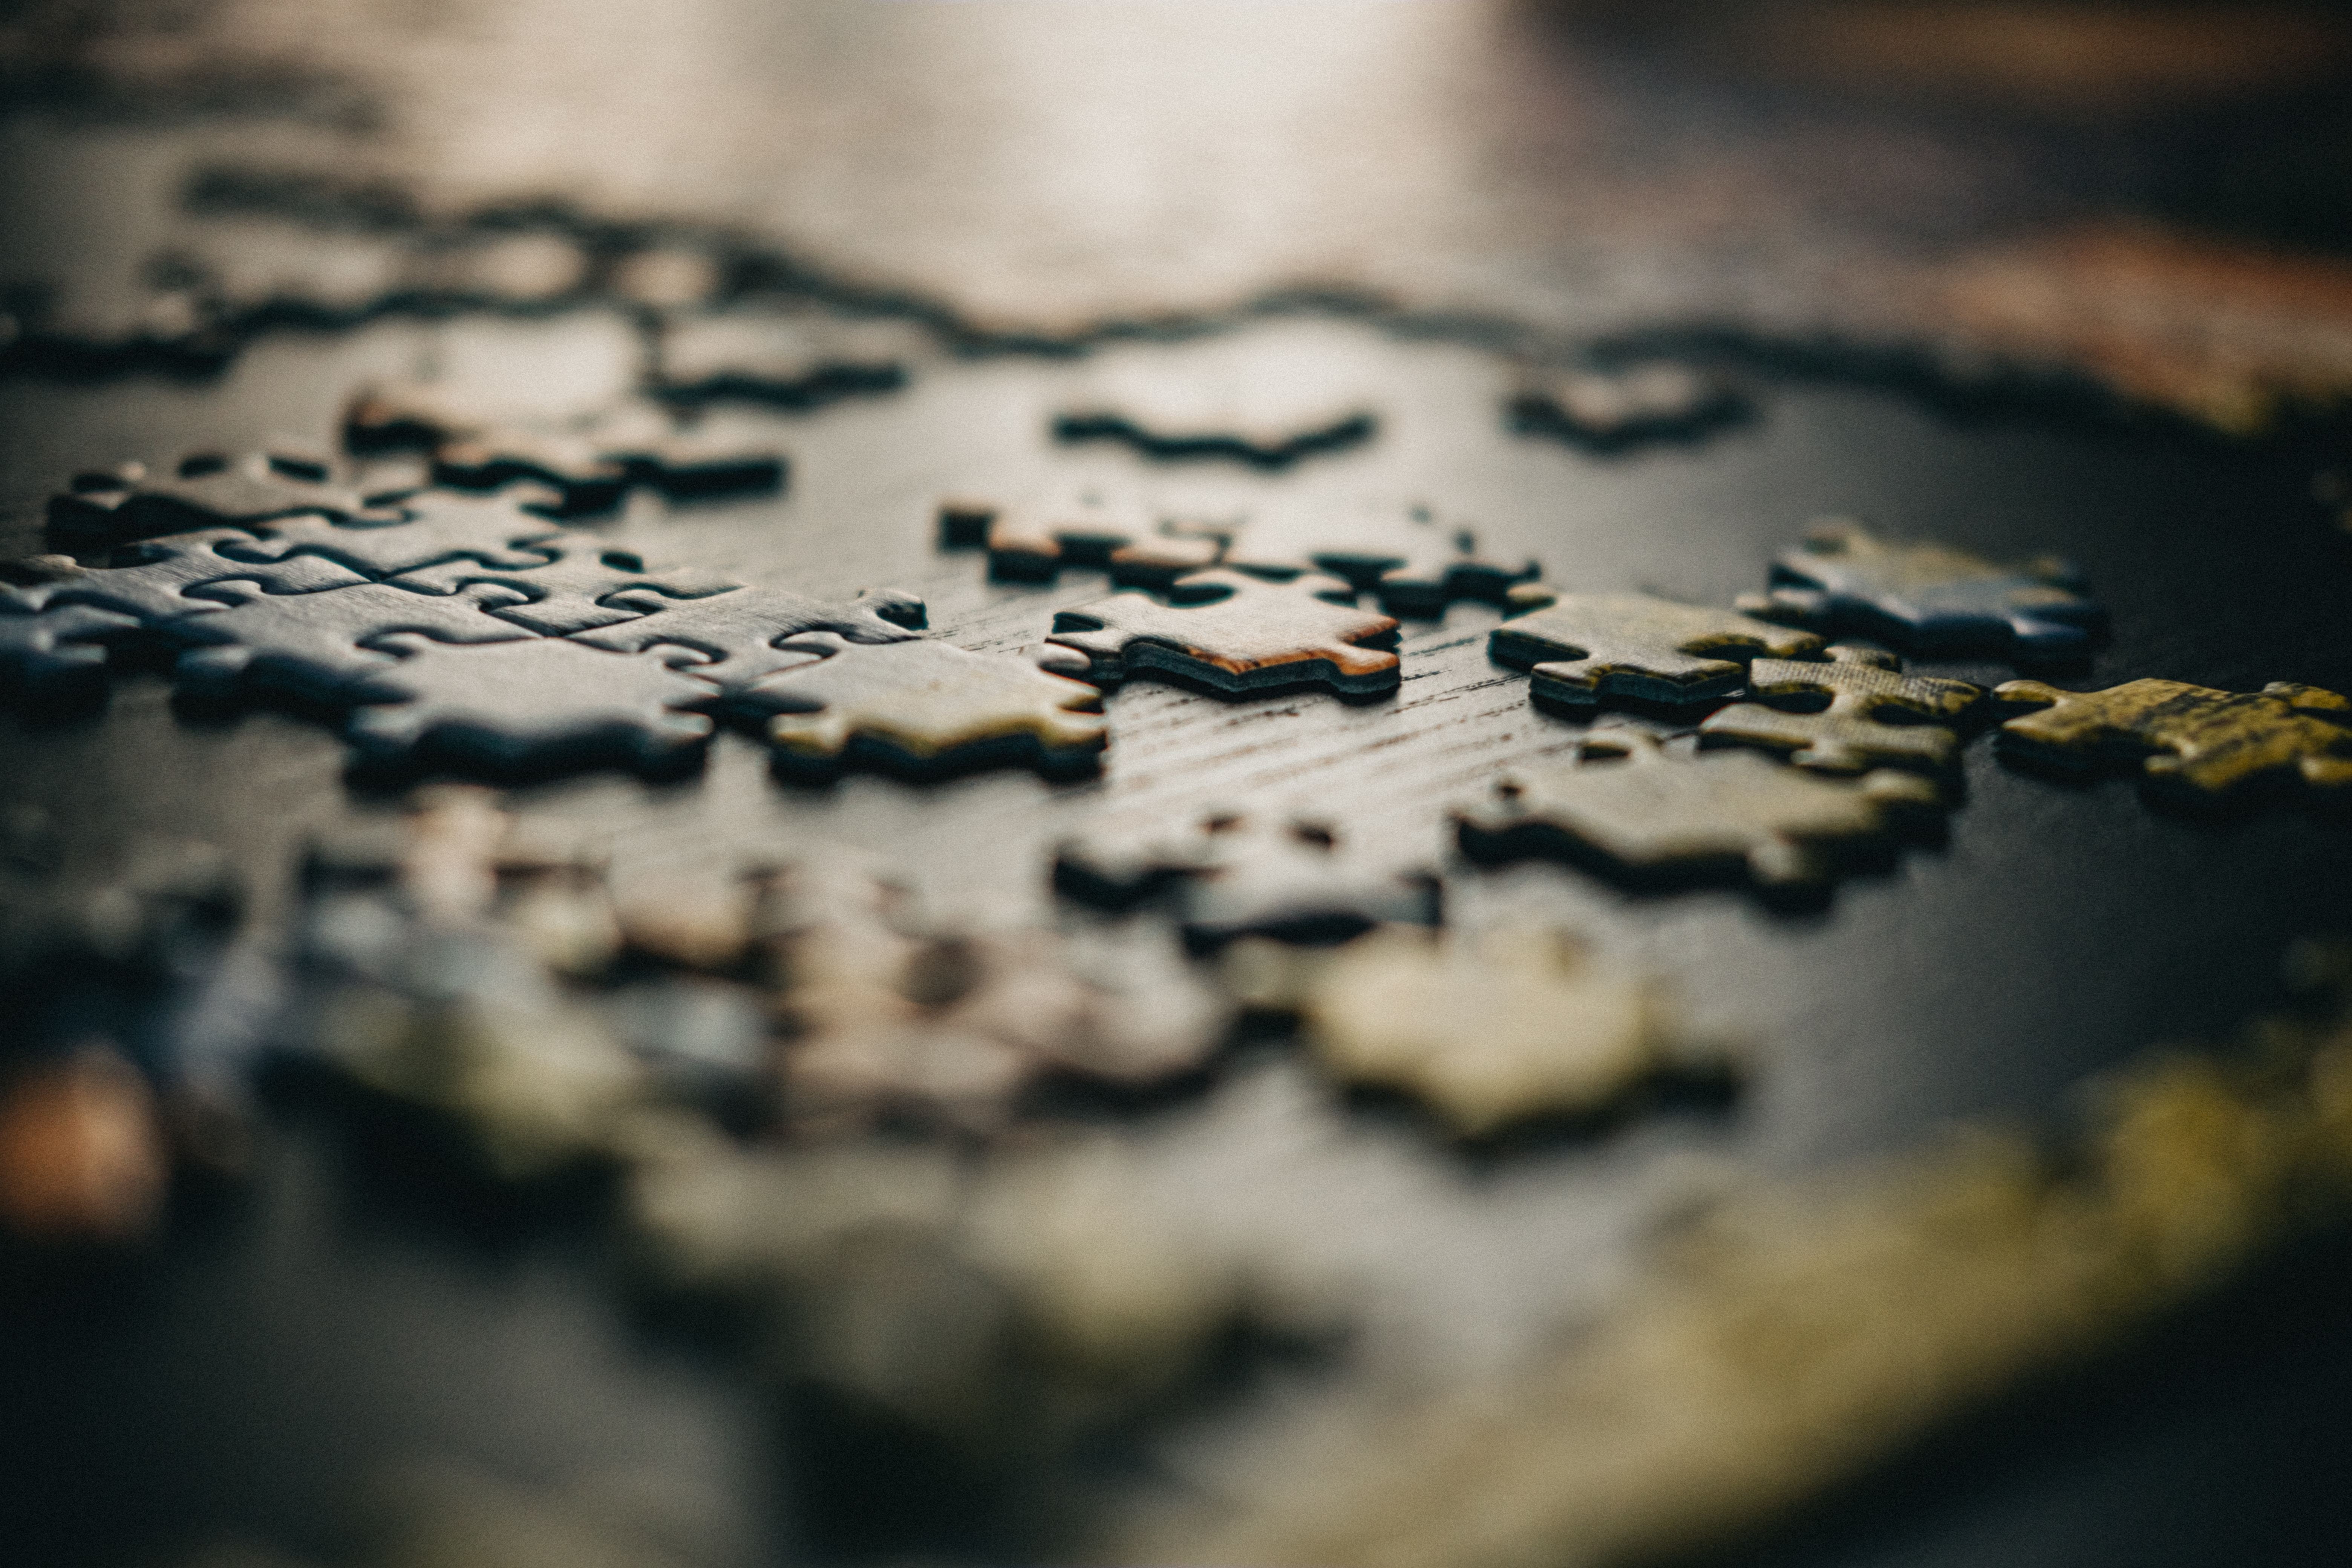 Puzzle pieces on a board